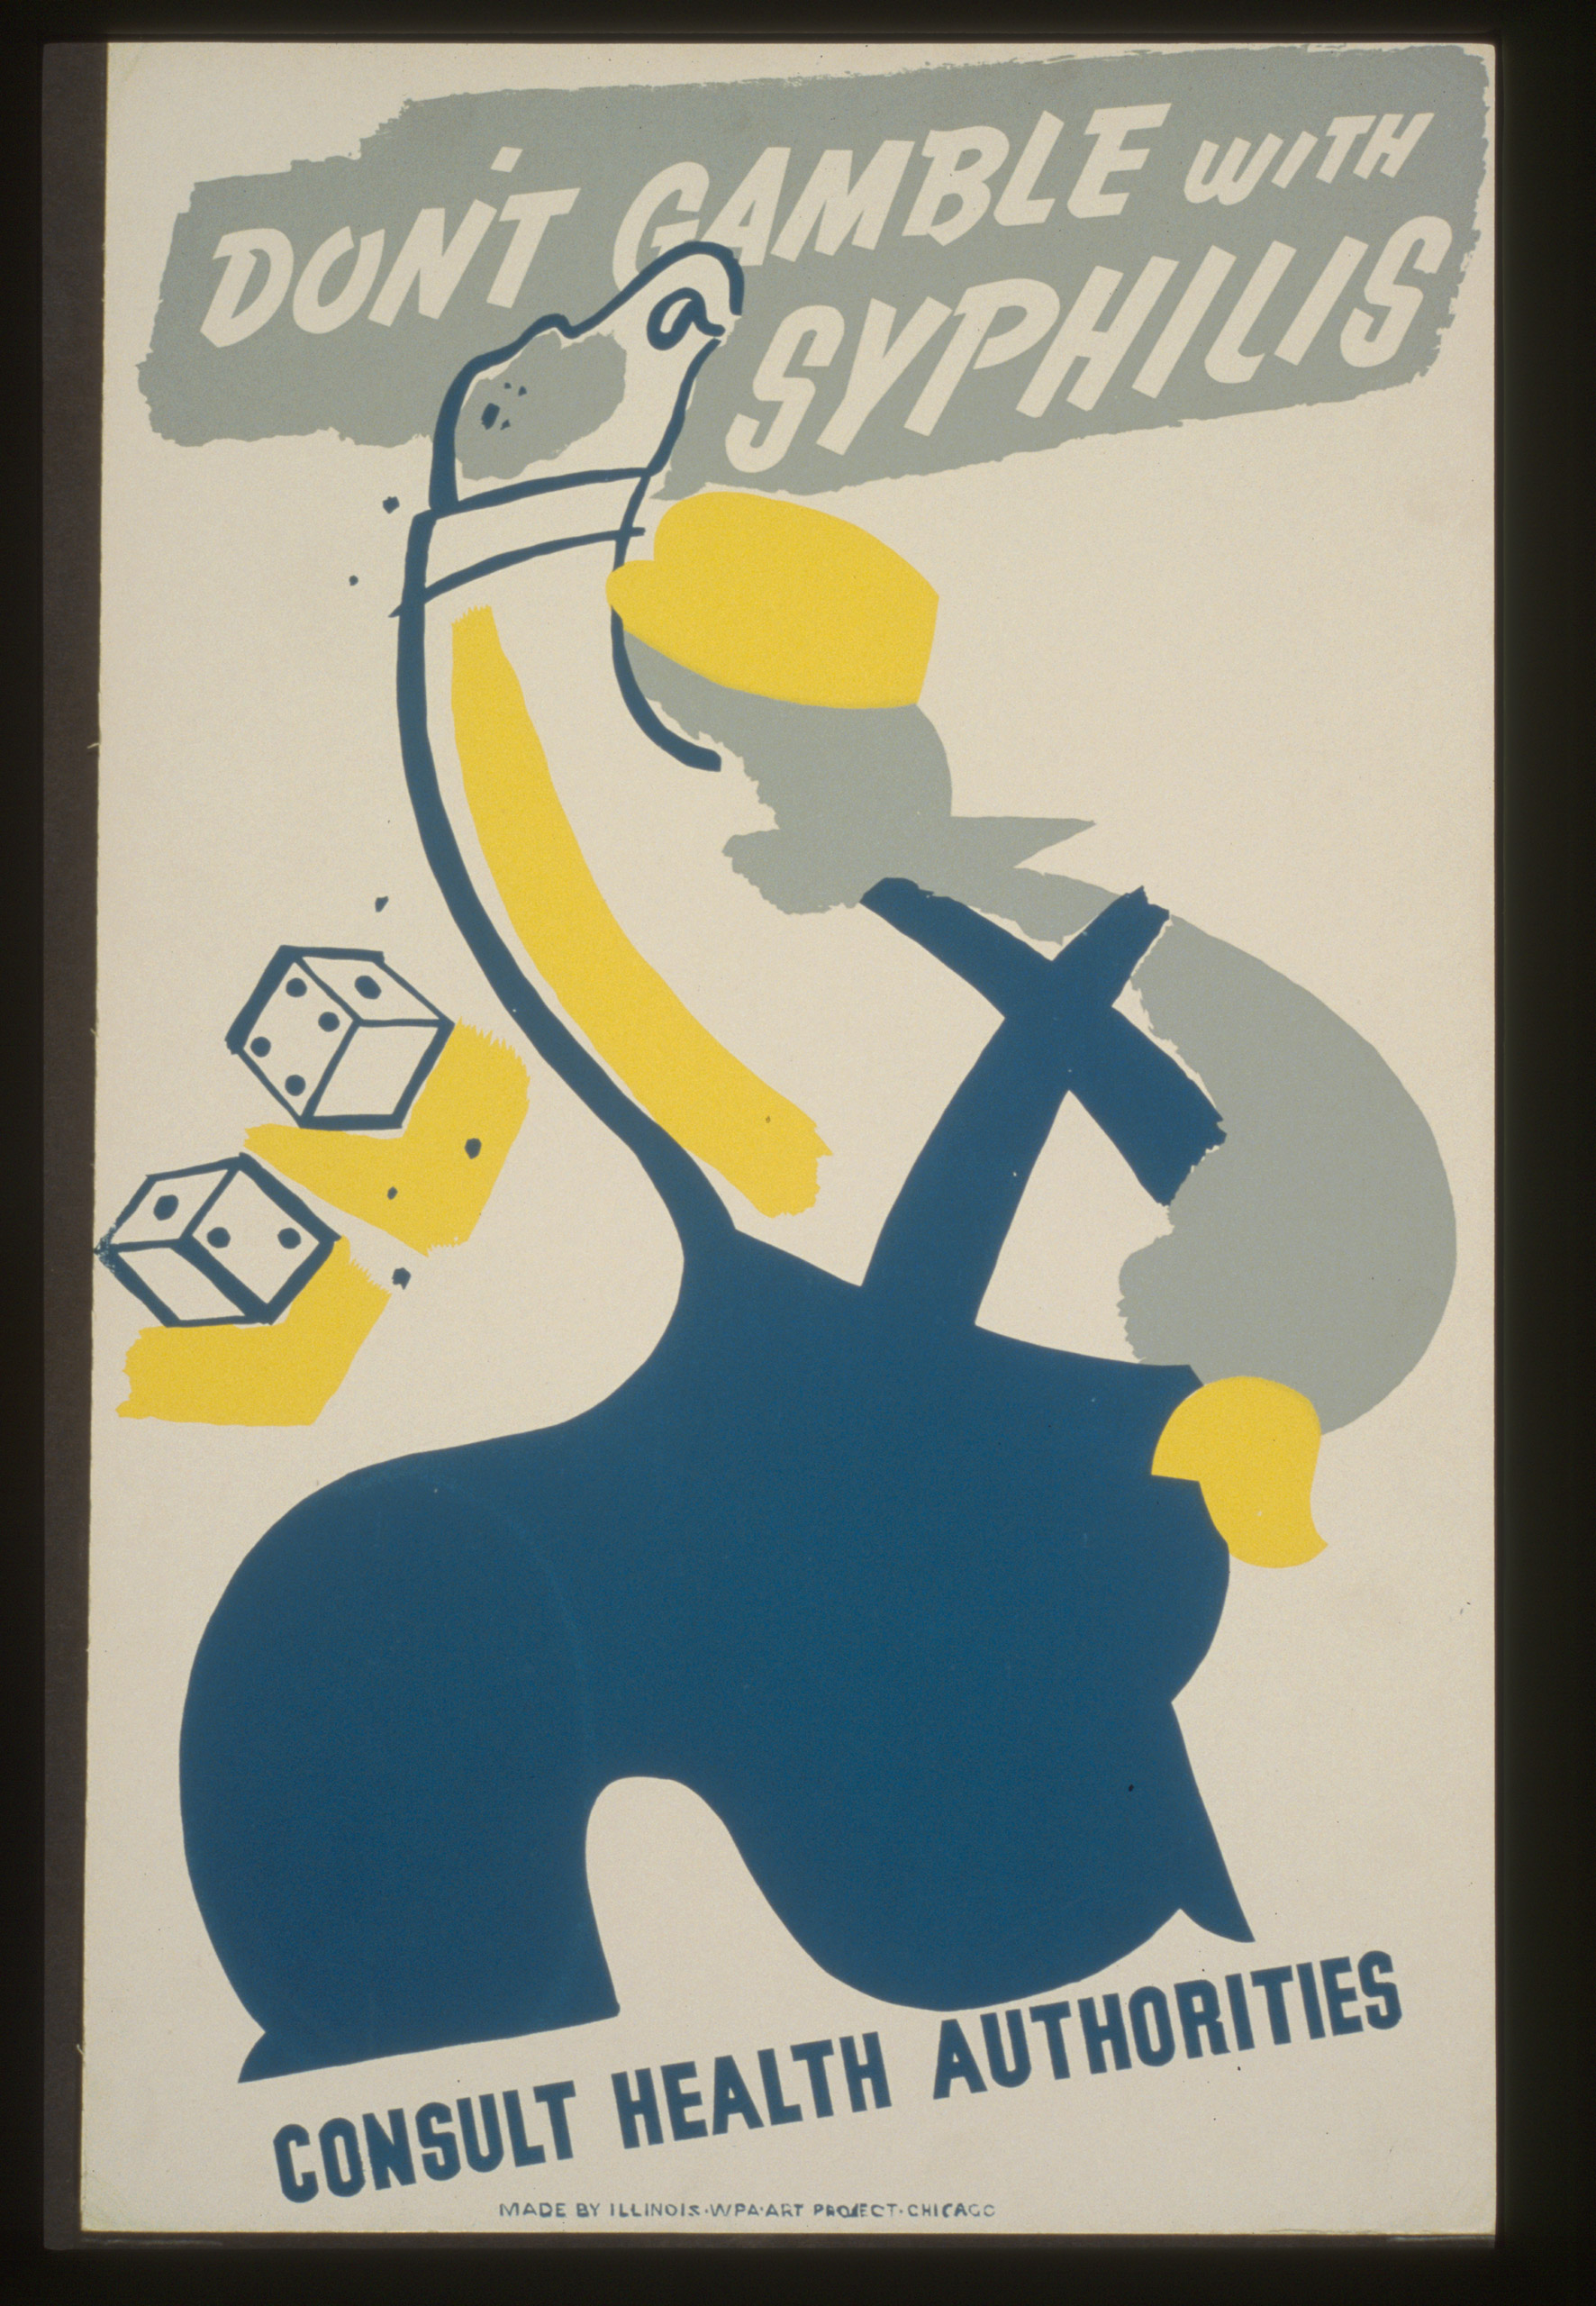 Poster showing a man rolling dice: Don't gamble with syphilis--Consult health authorities. Created between 1936 and 1940.